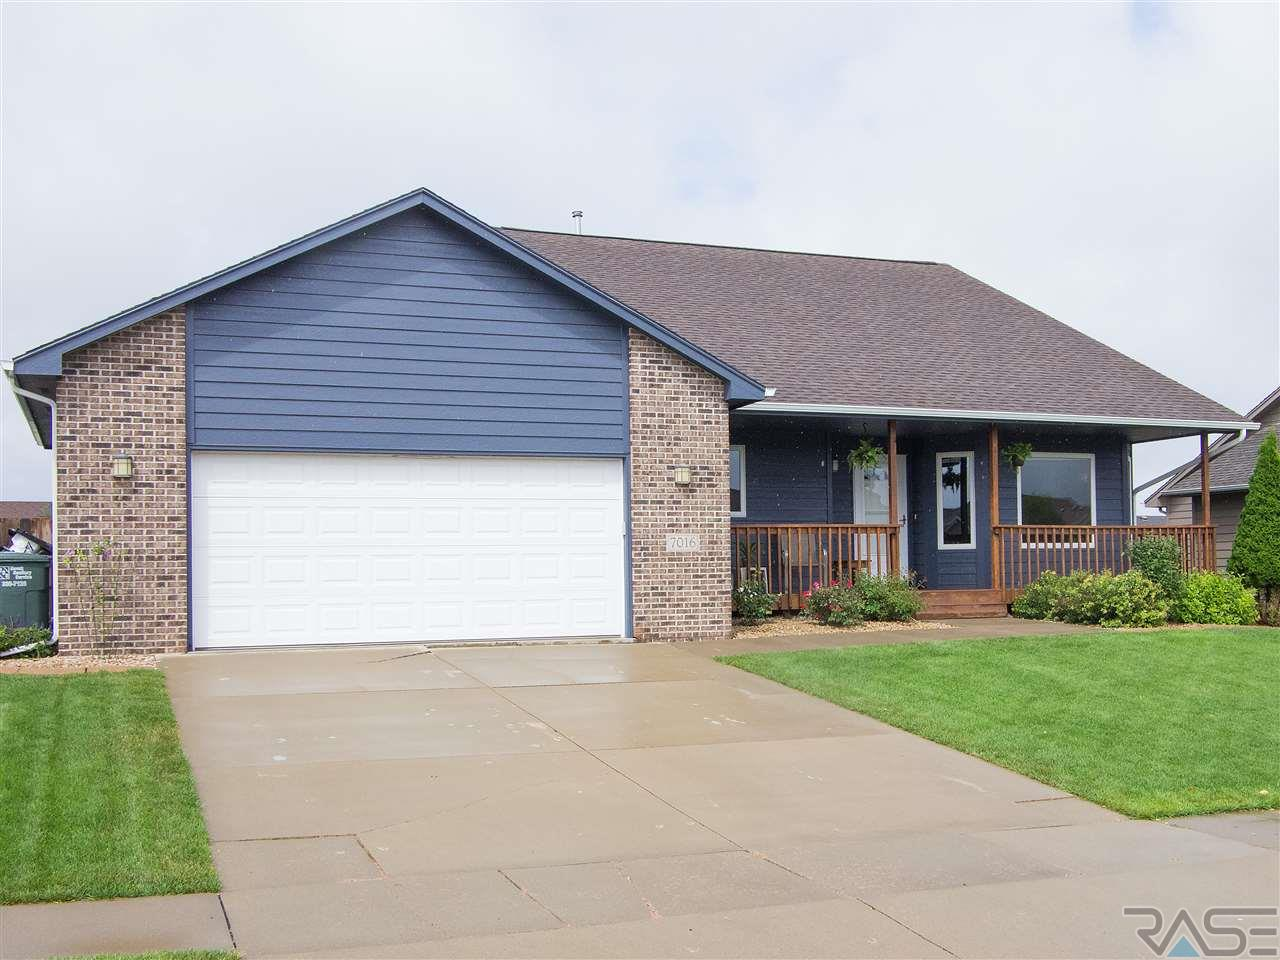 7016 W 51st St, SIOUX FALLS